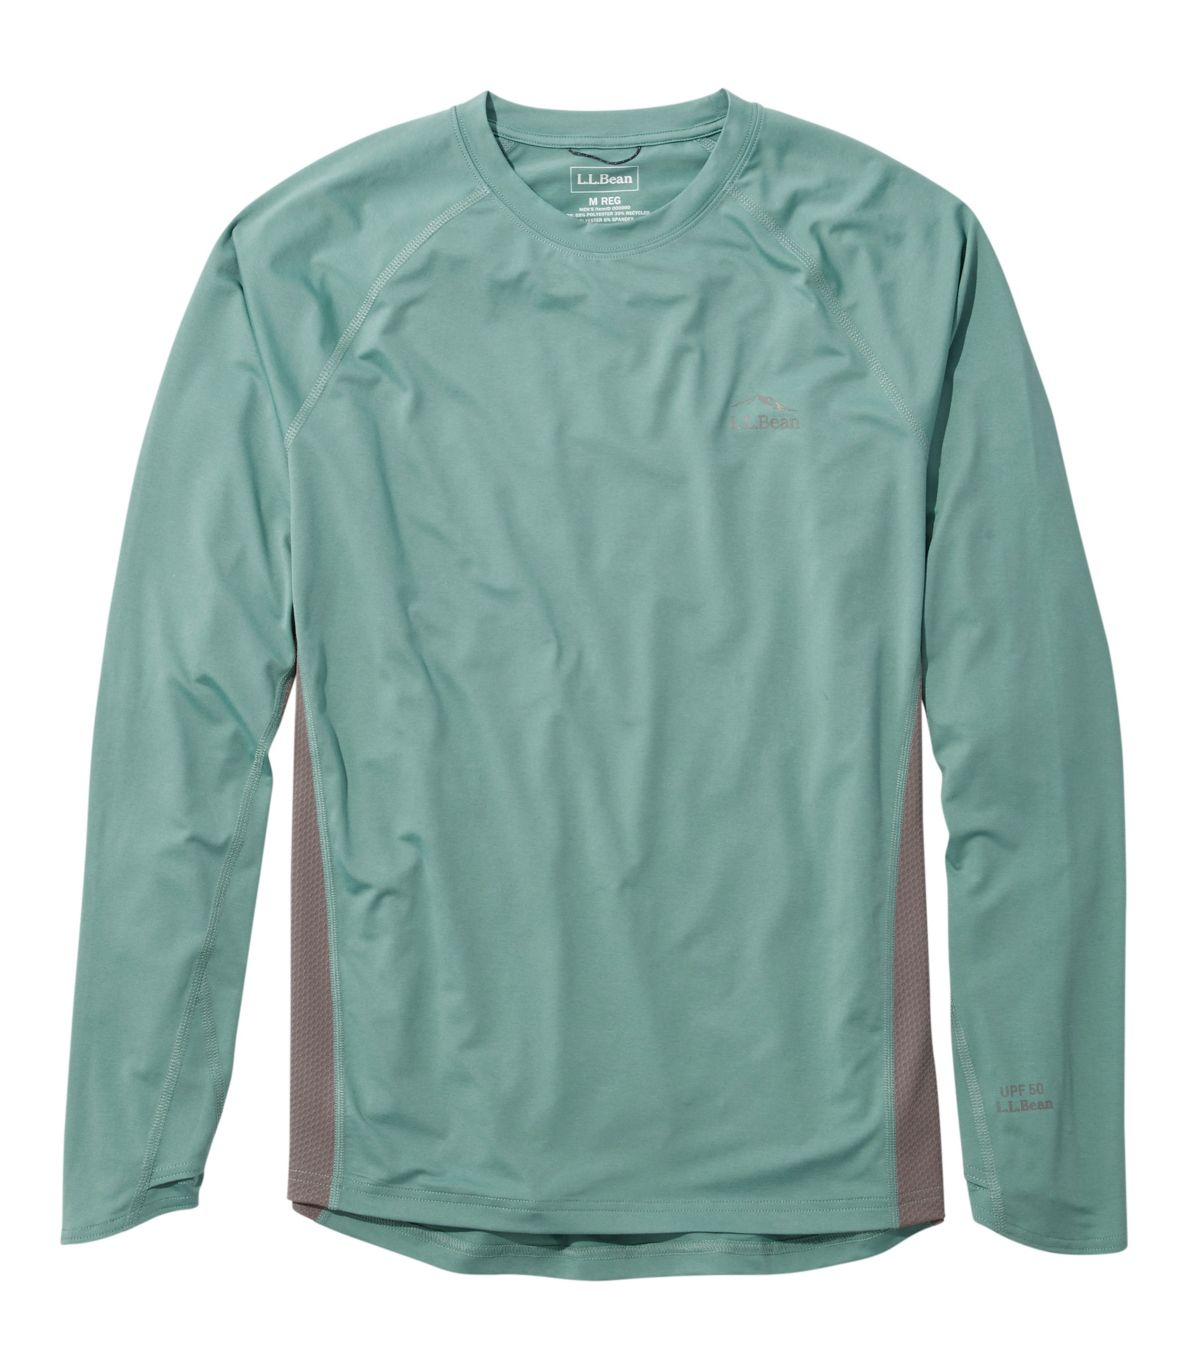 Men's Tropicwear Knit Crew Shirt, Long-Sleeve